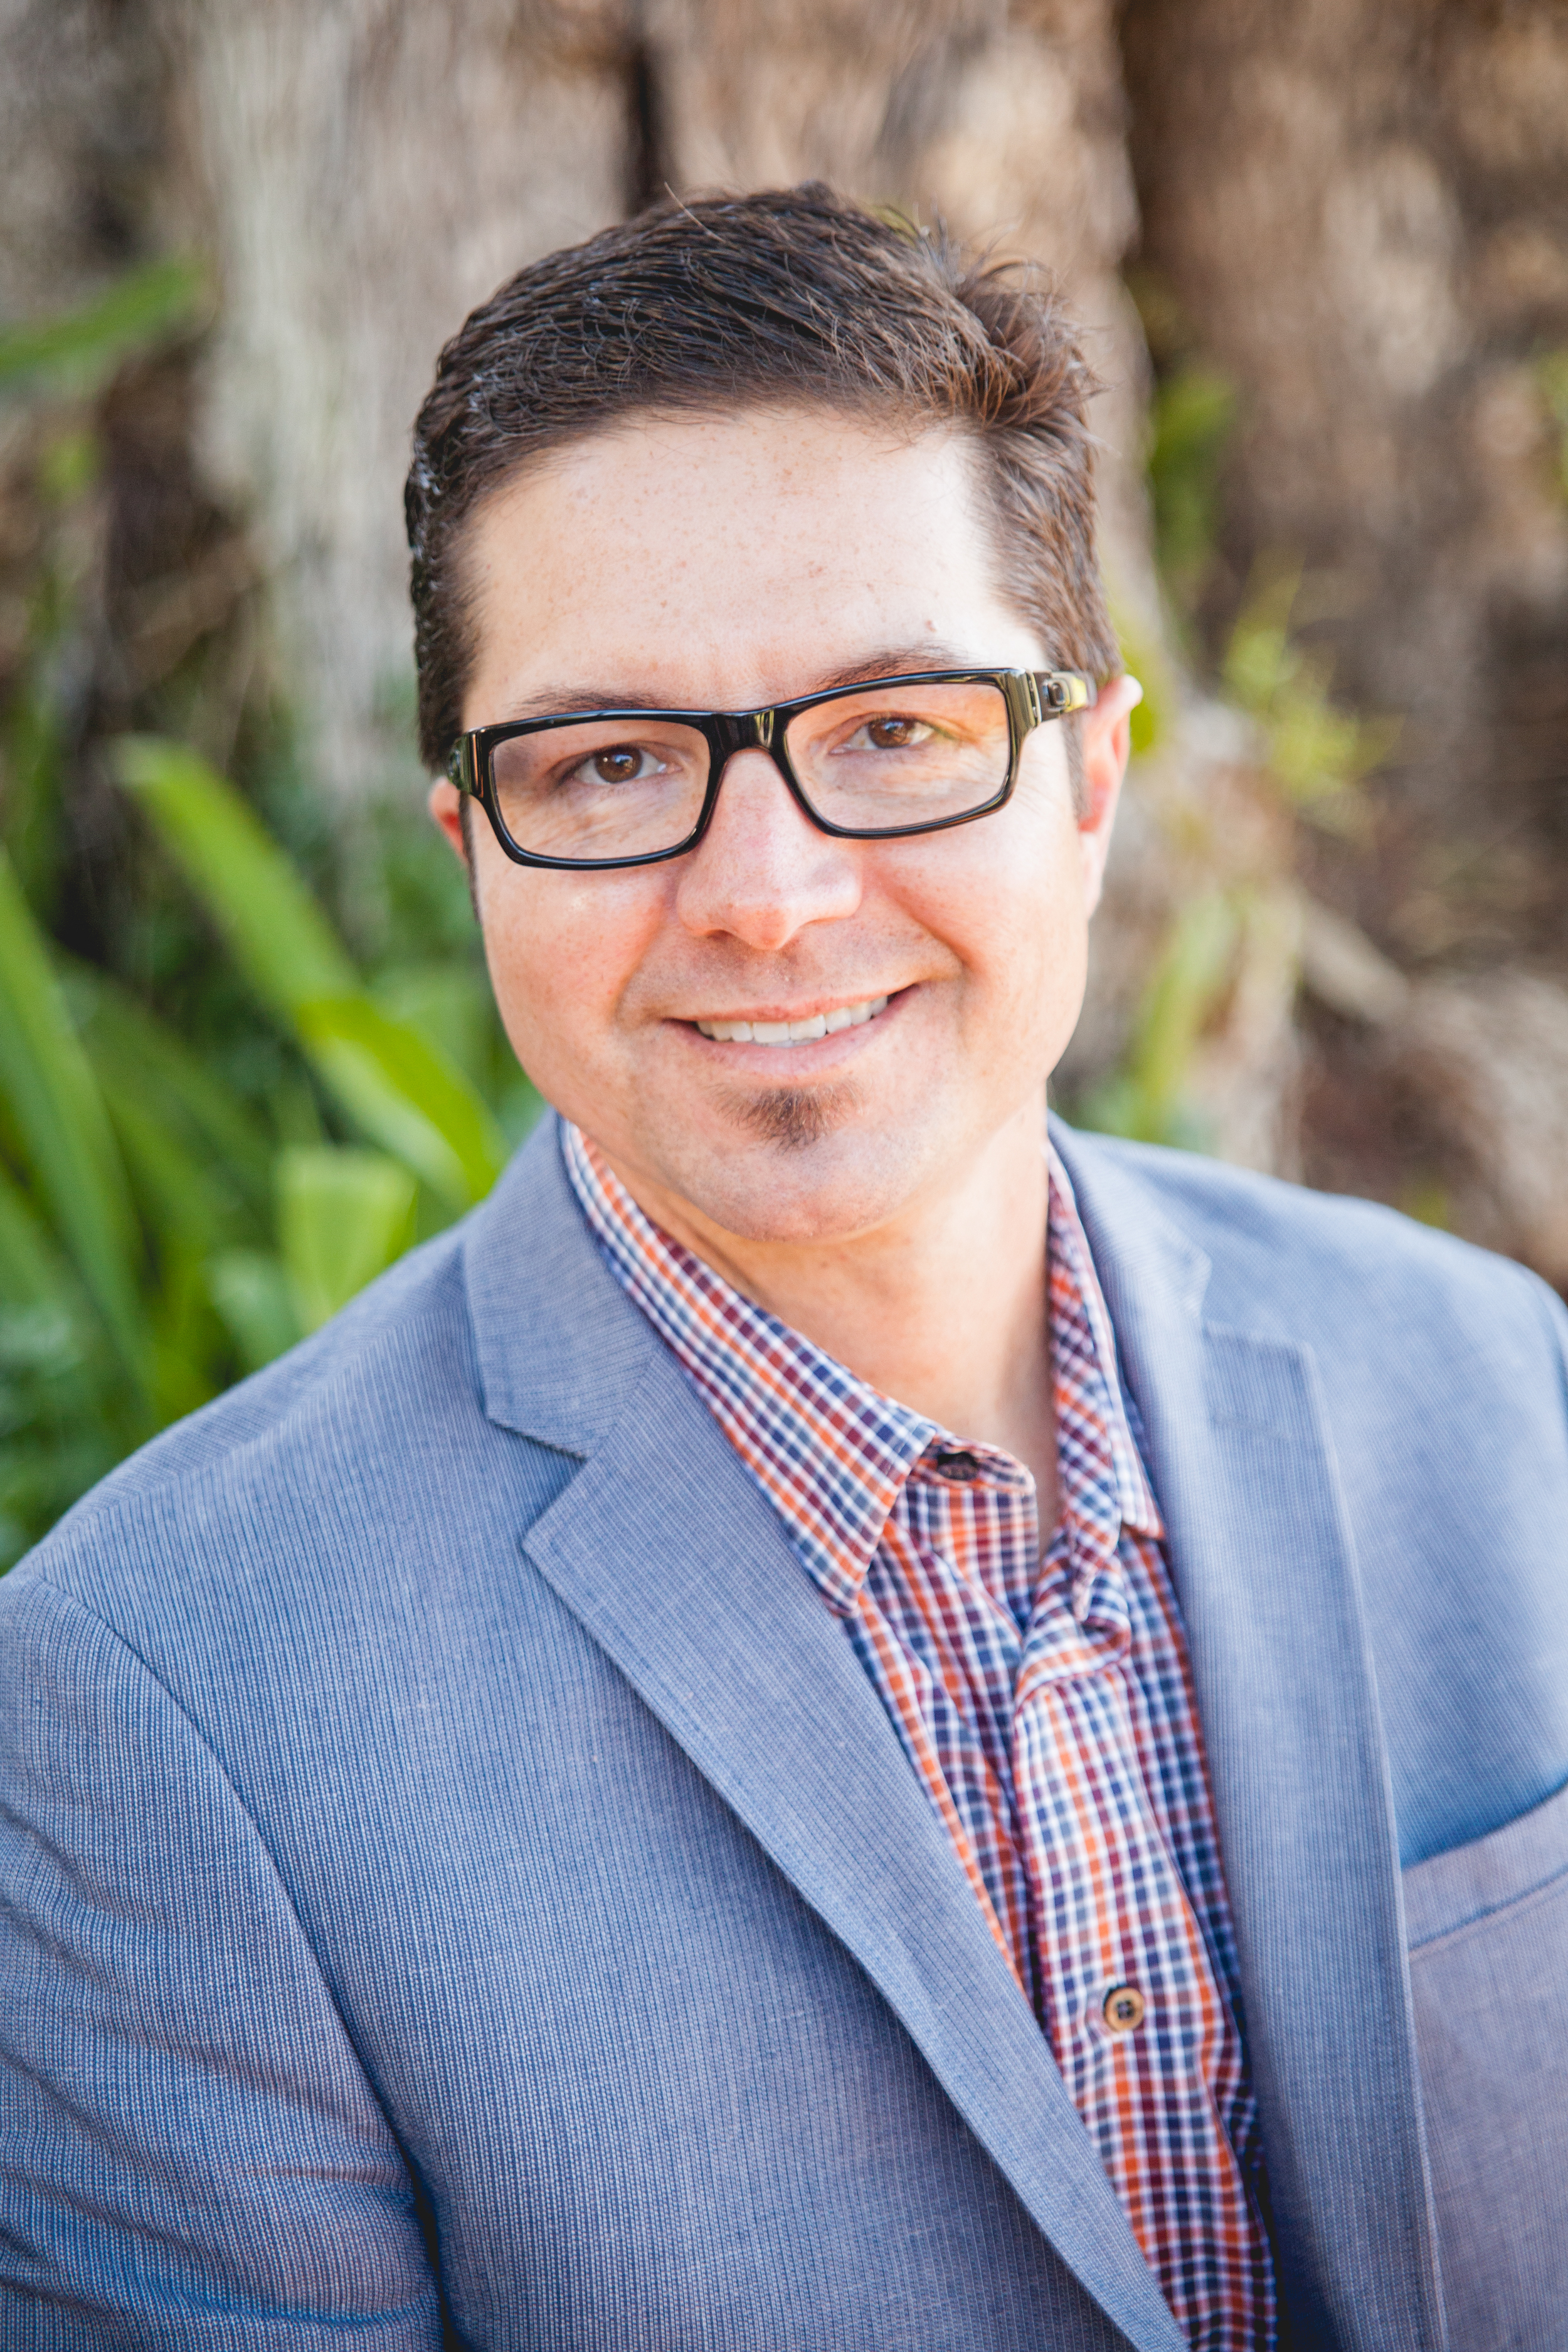 Clint Morgan, CEO   Clint is a San Diego native who is passionate about building teams and technology. Clint founded NSW in 2004. His hobbies include flying, anything outdoor related, and video / photography.